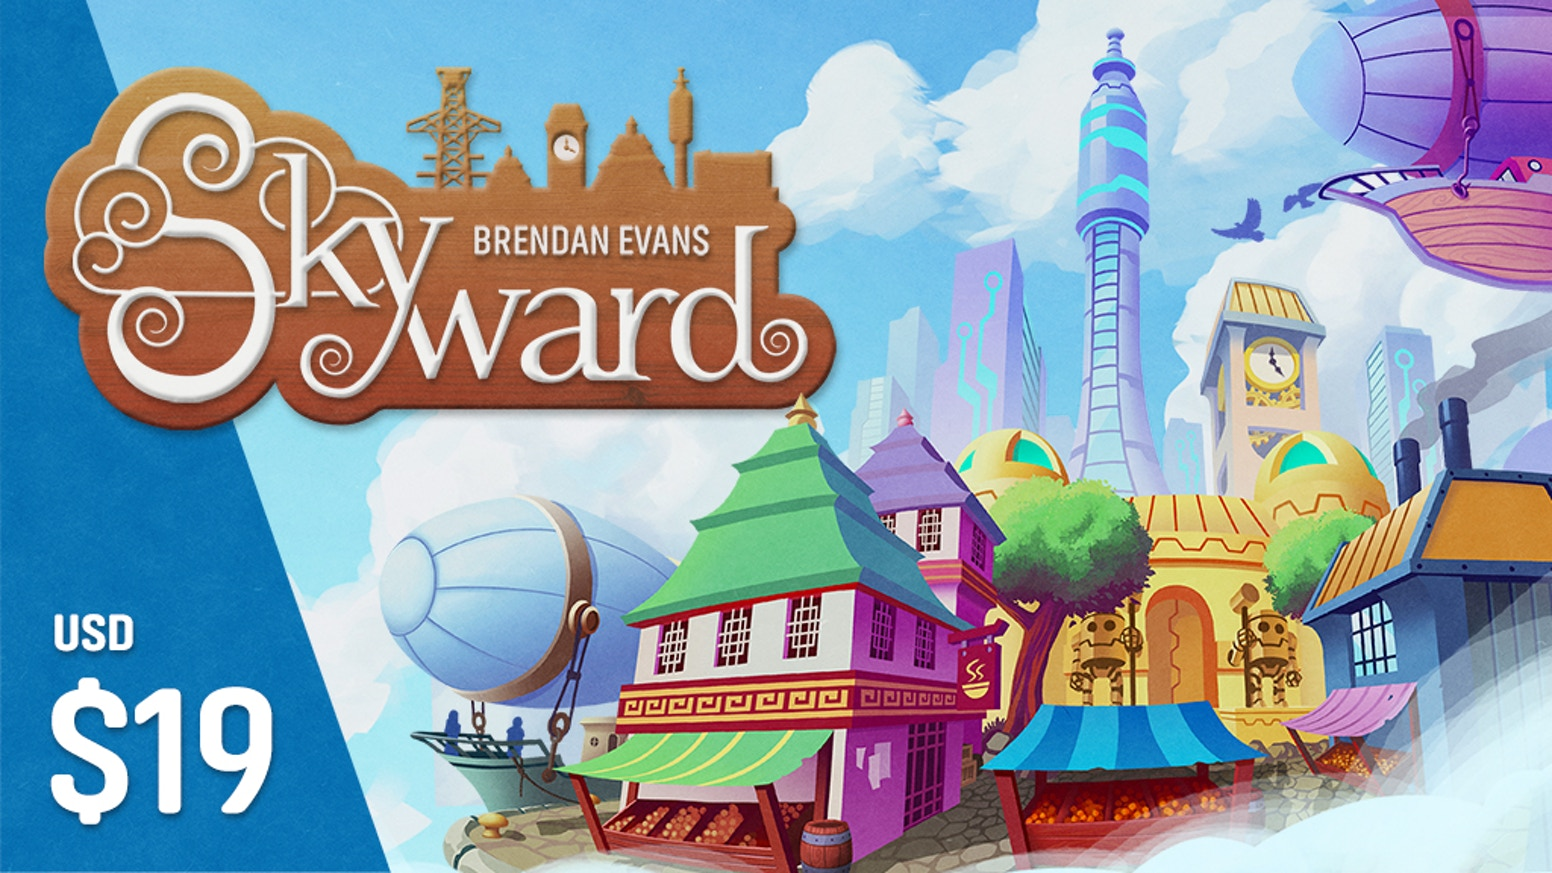 A clever and unique strategy card drafting game set in a world where buildings float, airships rule and pigeons are rodents of the sky.